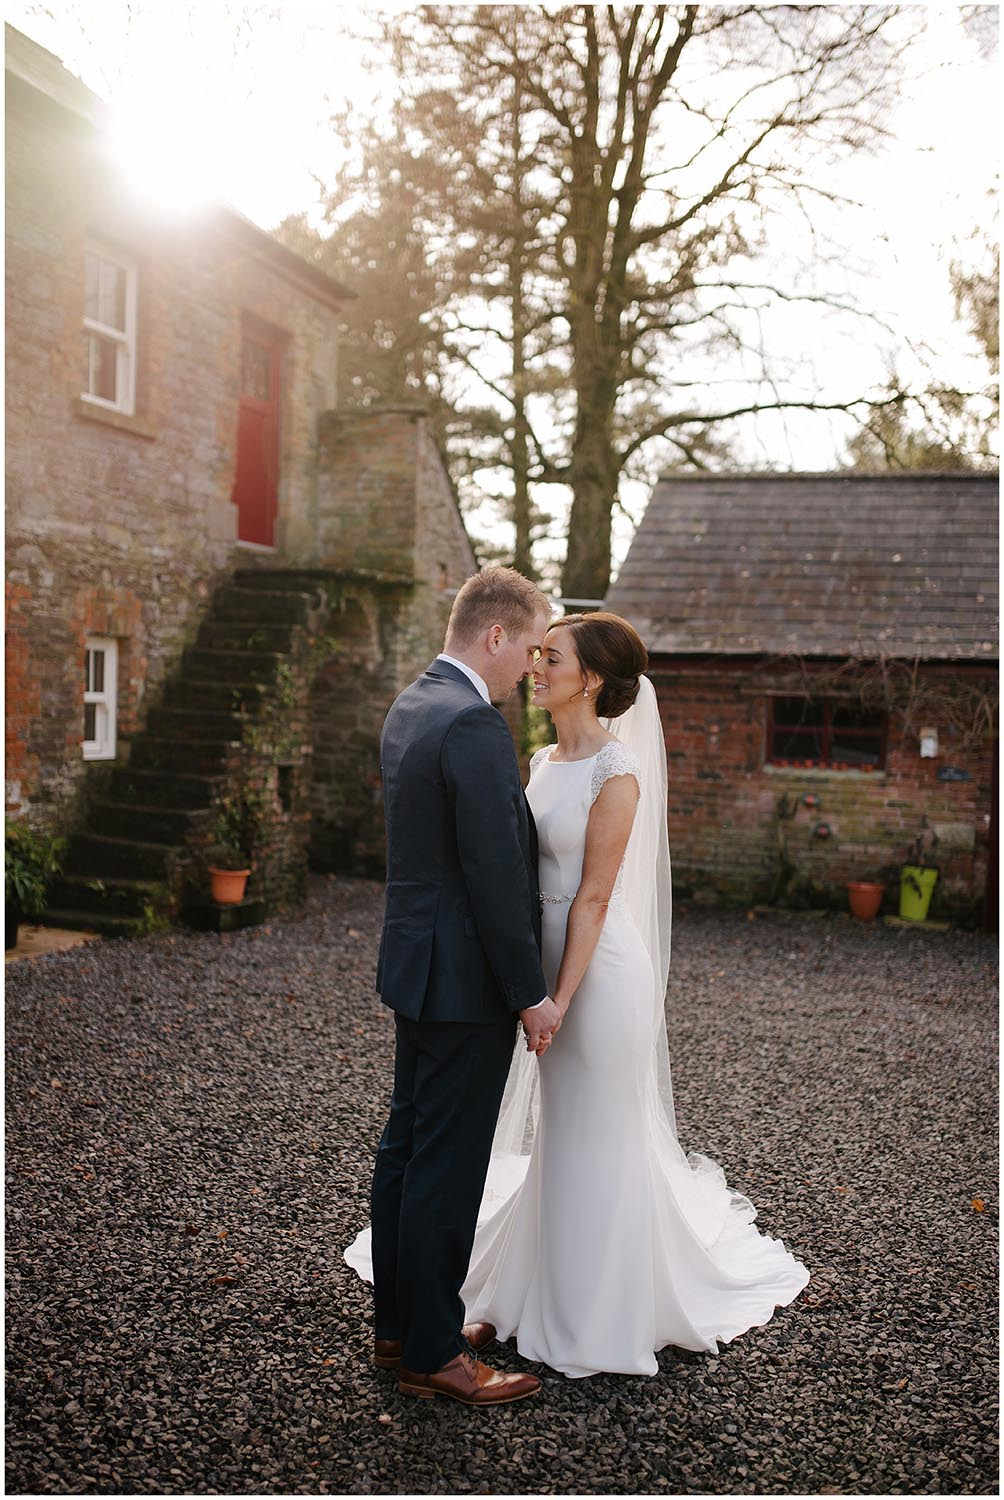 Irish-wedding-photographer-jude-browne-photography_0284.JPG